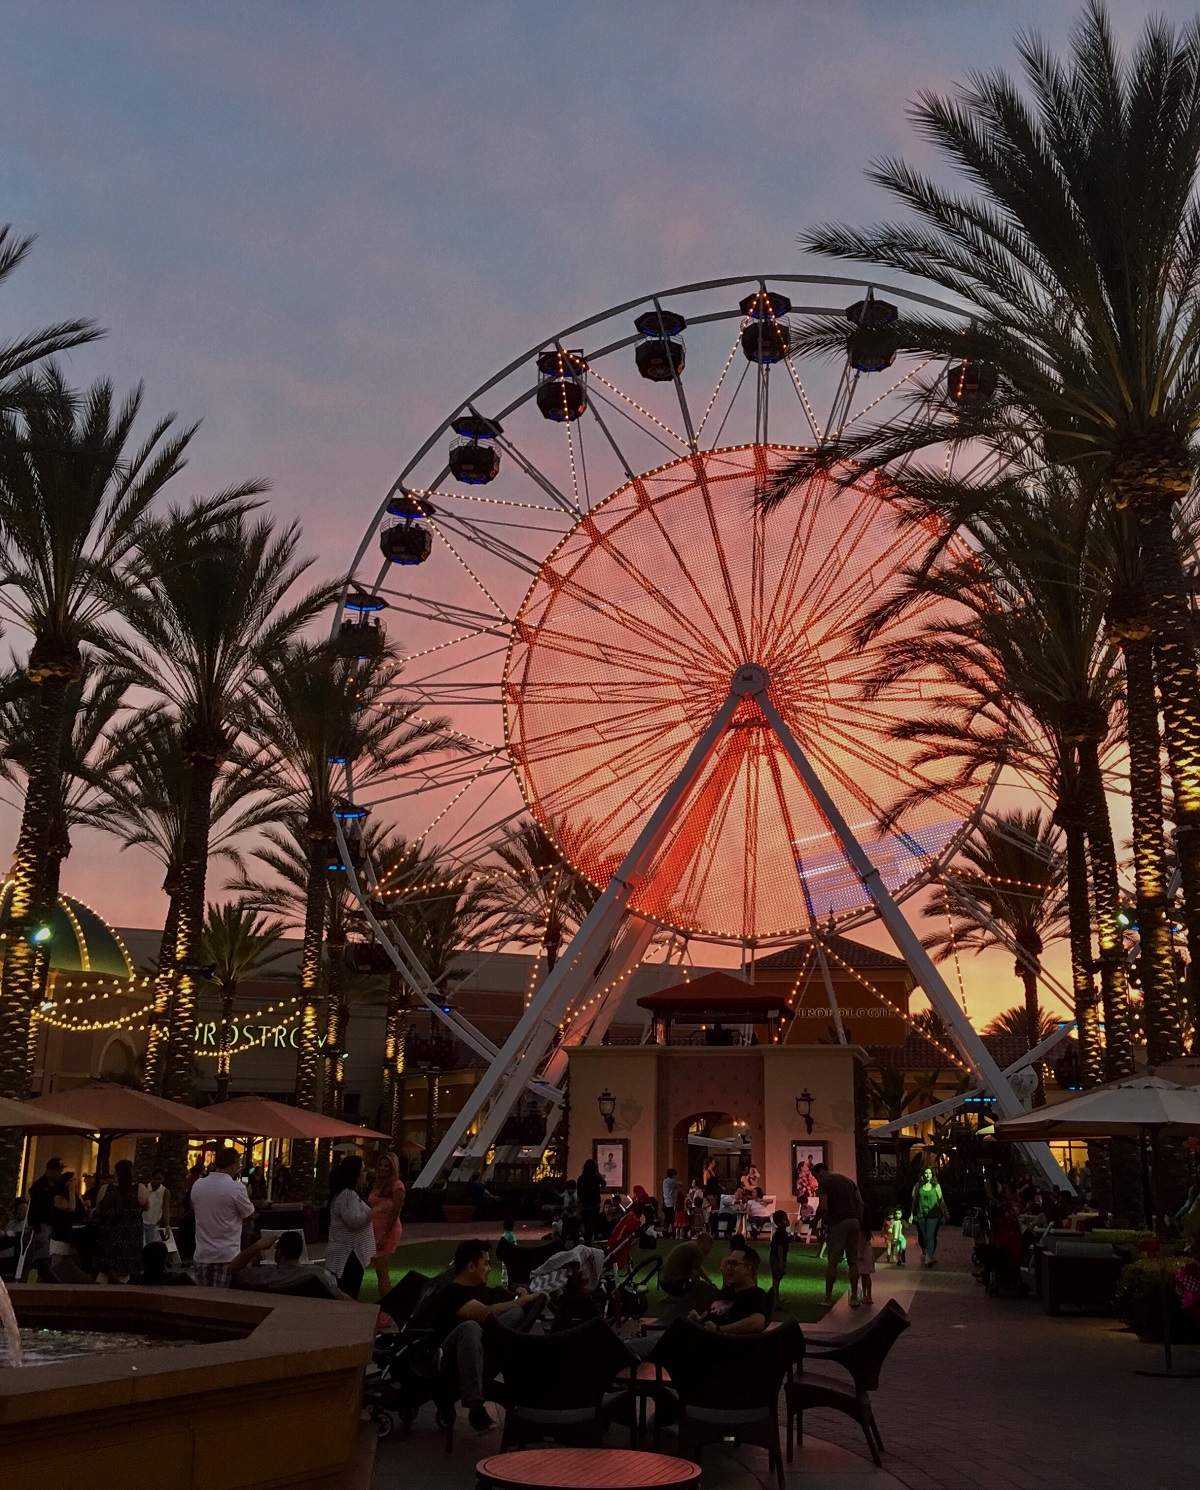 Choosing-things-to-do-in-Orange-County-is-easy-with-the-Irvine-Spectrum-Center-close-by